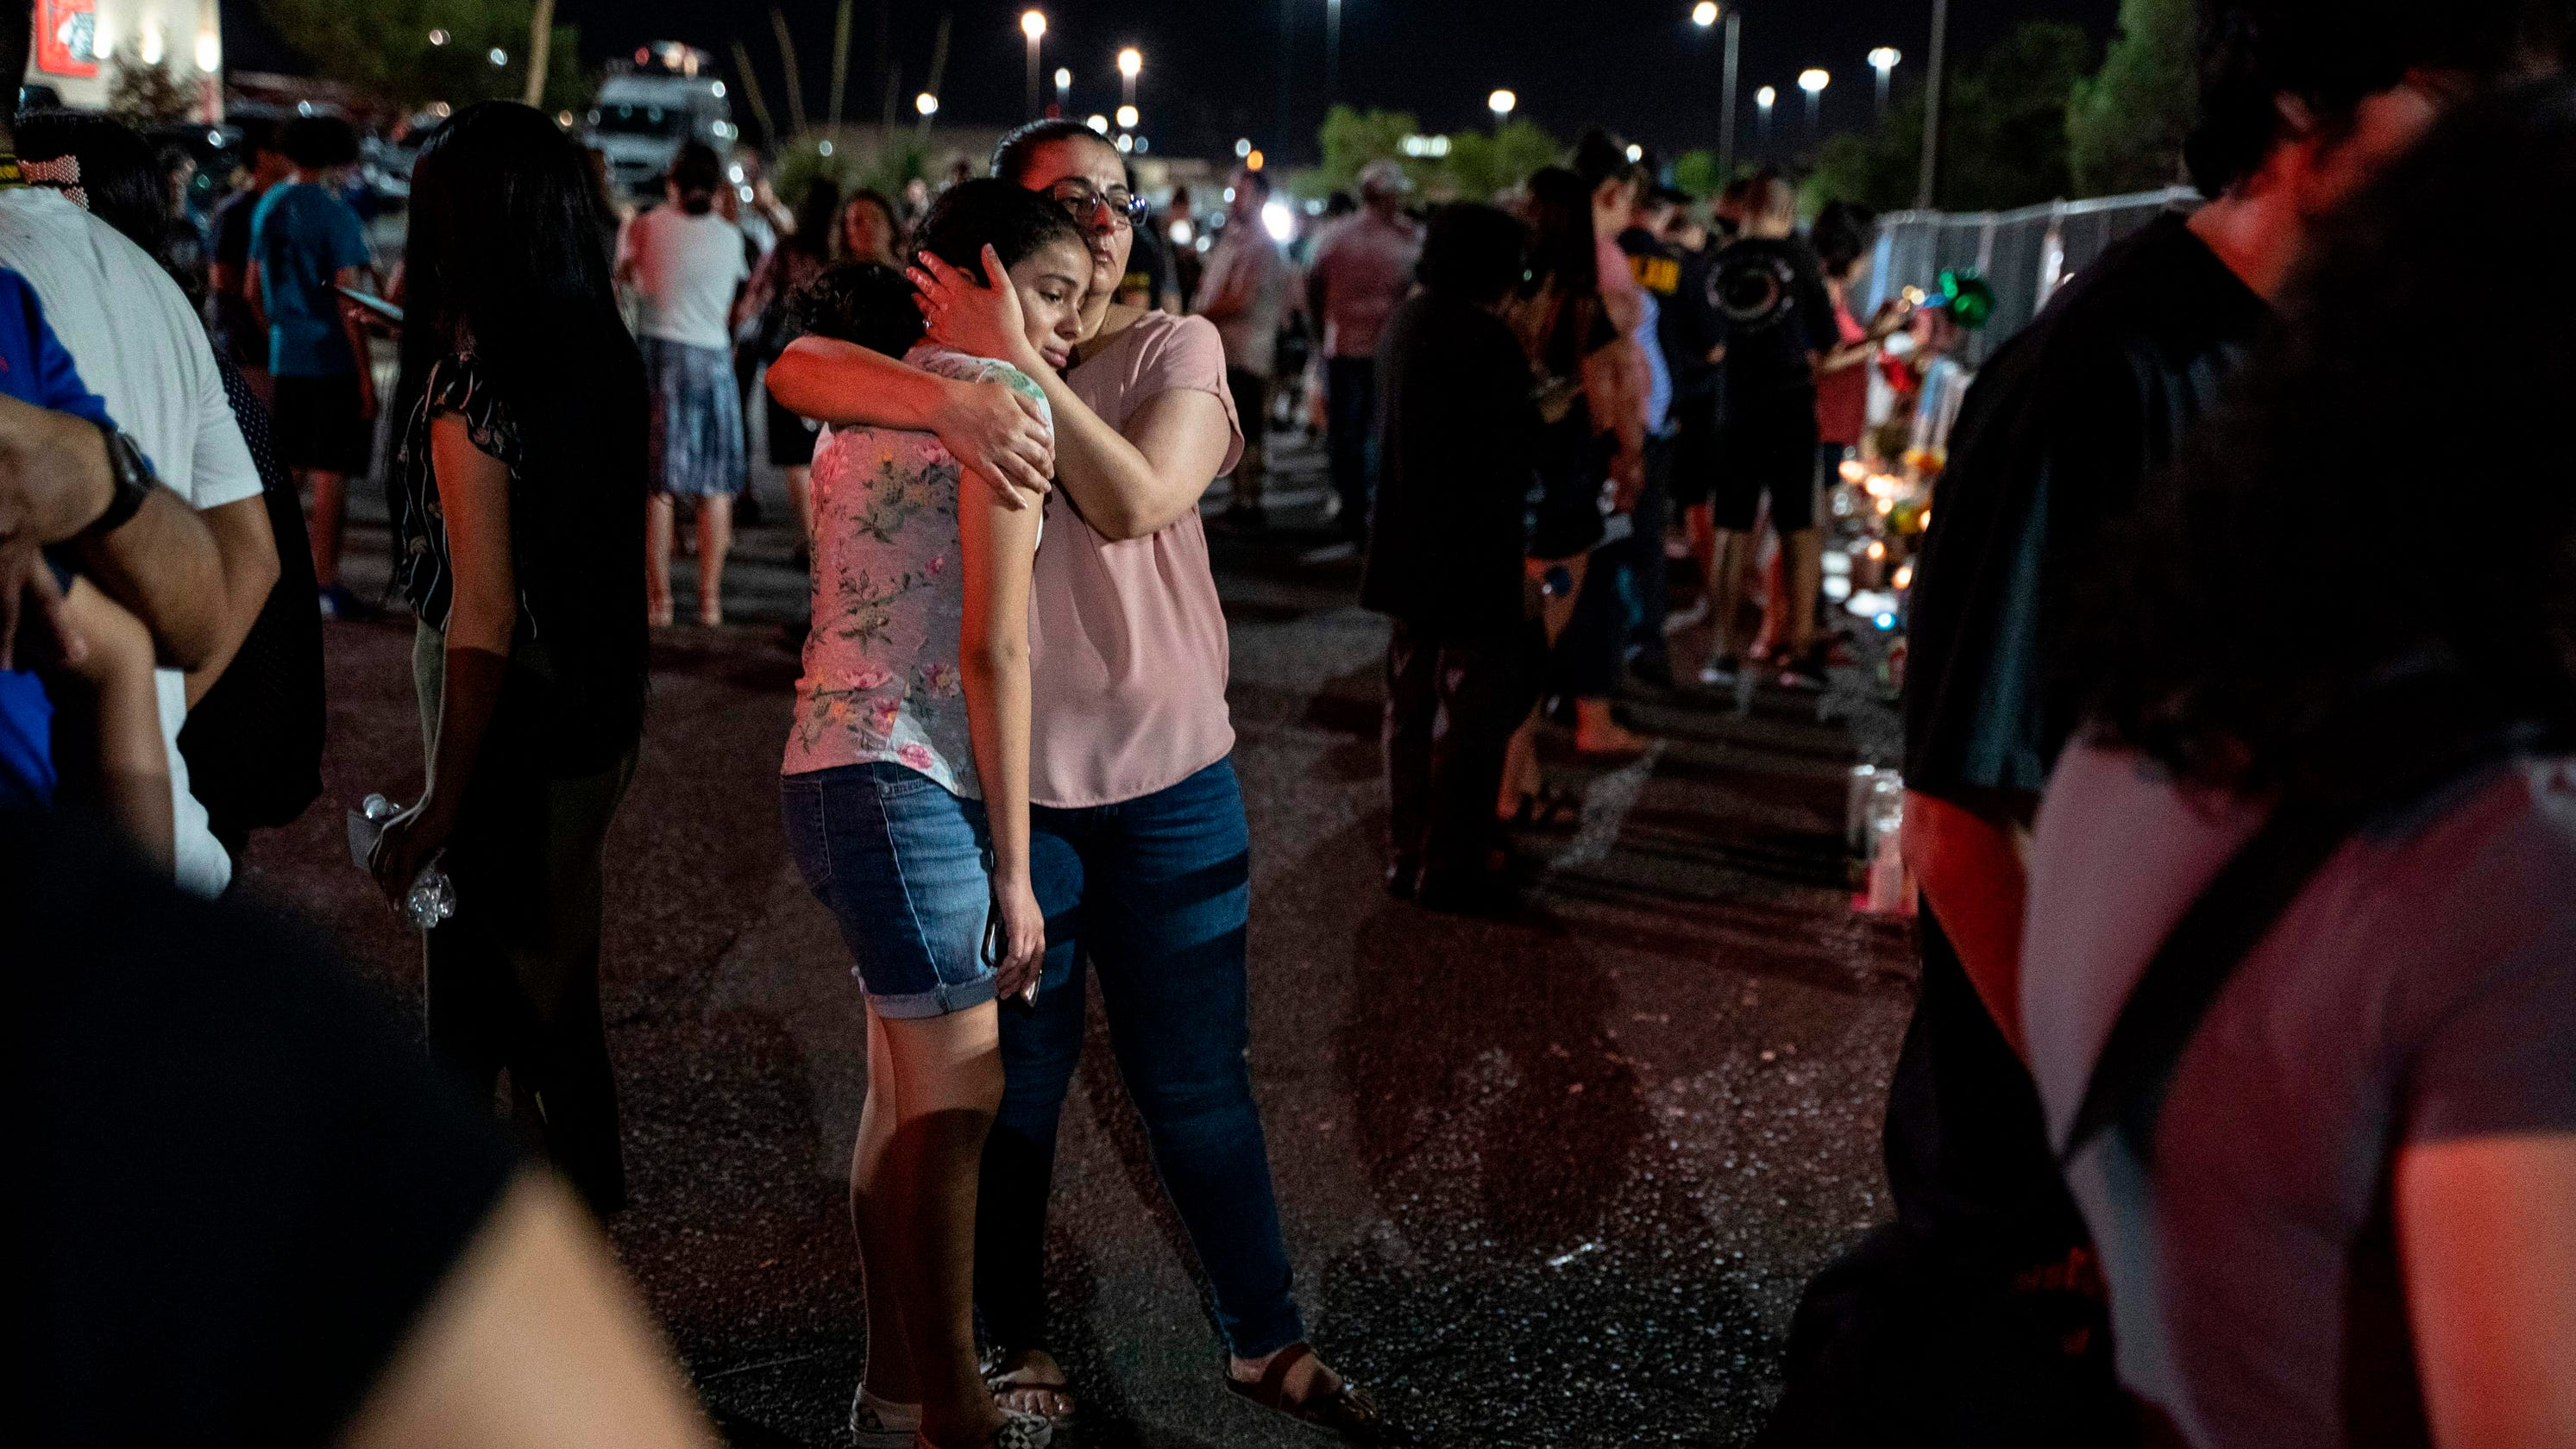 El Paso shootings: Man with no family invites public to